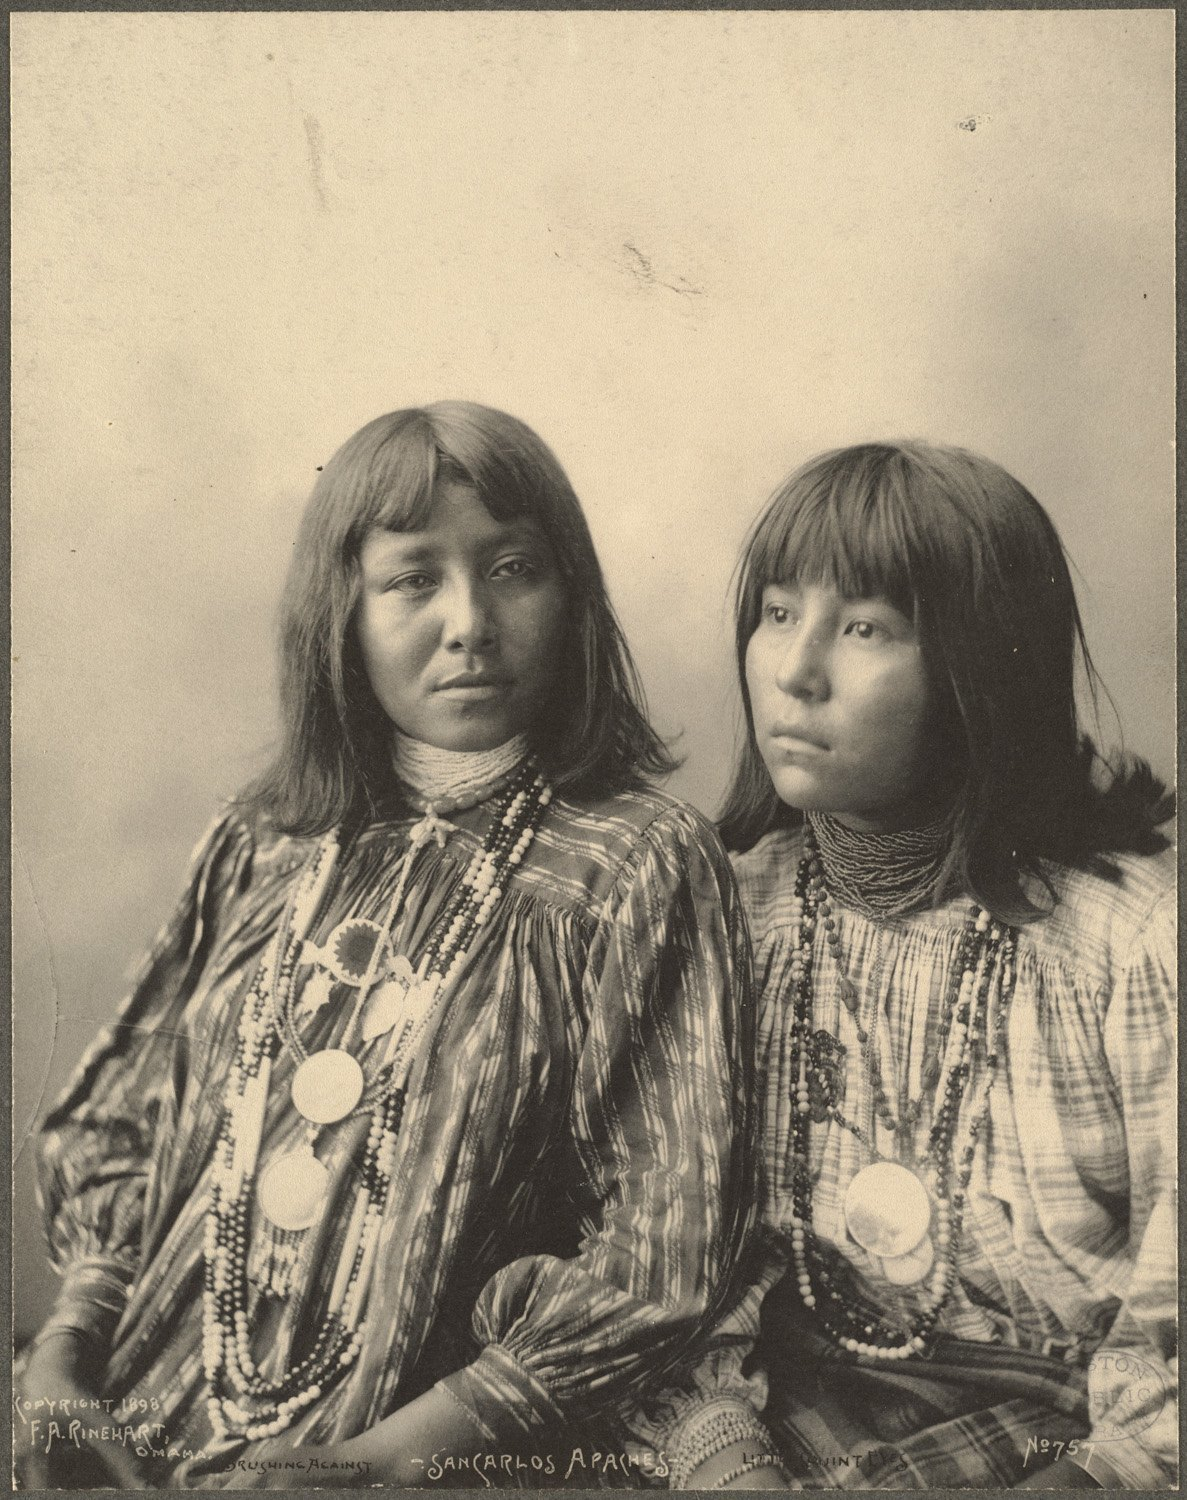 Brushing Against, Little Squint Eyes, San Carlos Apaches, 1899